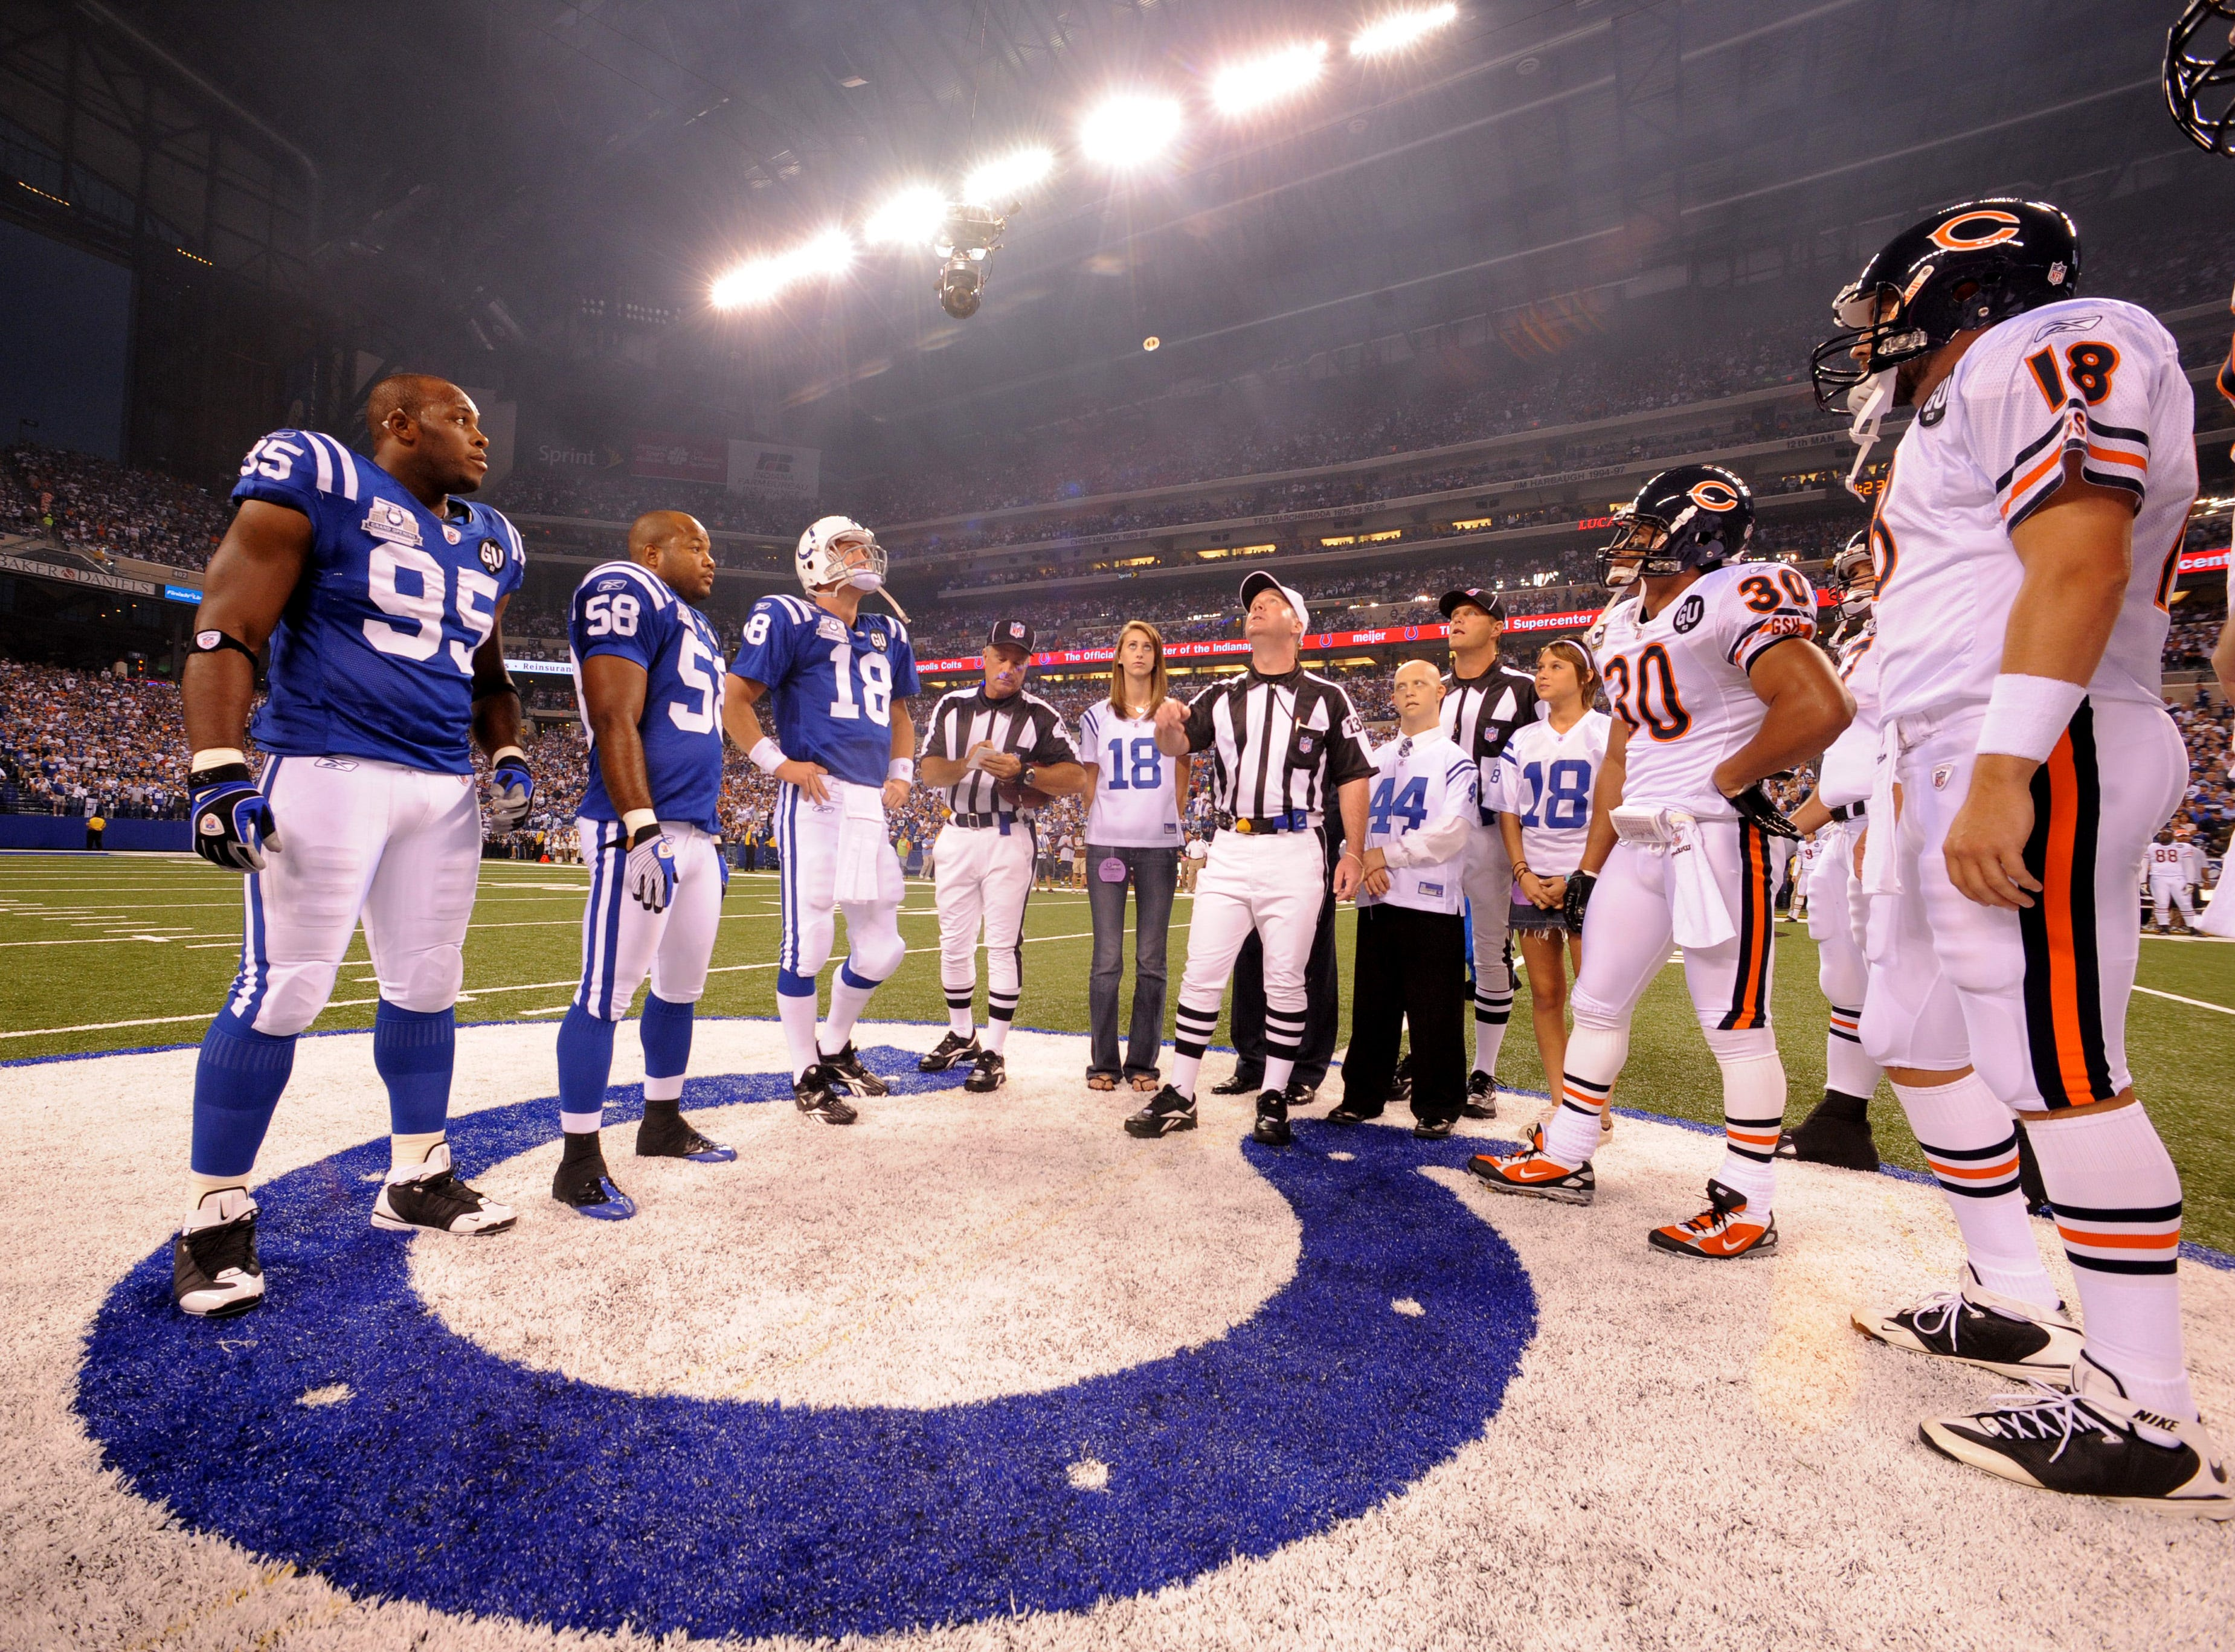 Indianapolis Colts and the Chicago Bears during the coin toss at the start of the Colts first regular season game at Lucas Oil Stadium on Sunday, September 7, 2008, at Lucas Oil Stadium.